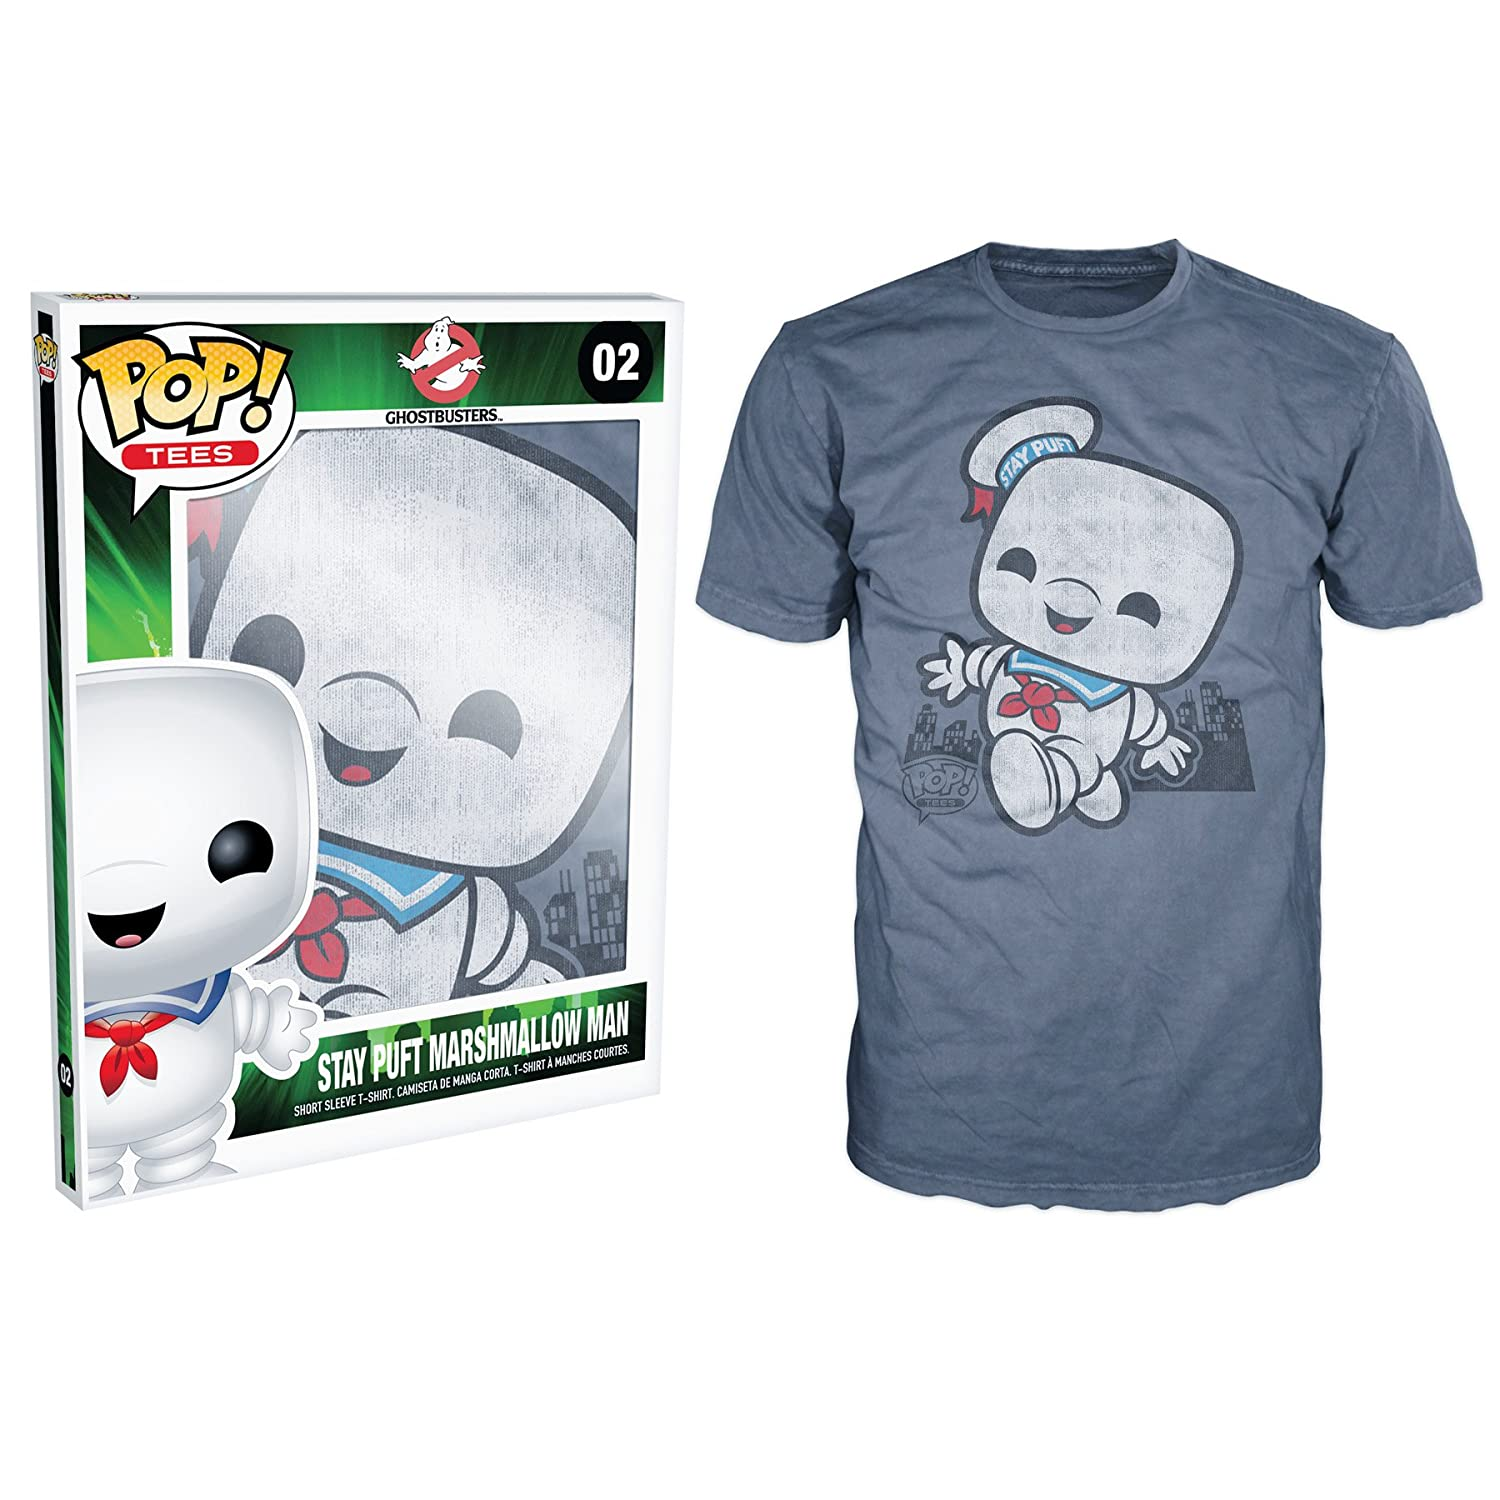 Funko Ghostbusters - Stay Puft Marshmallow T-Shirt